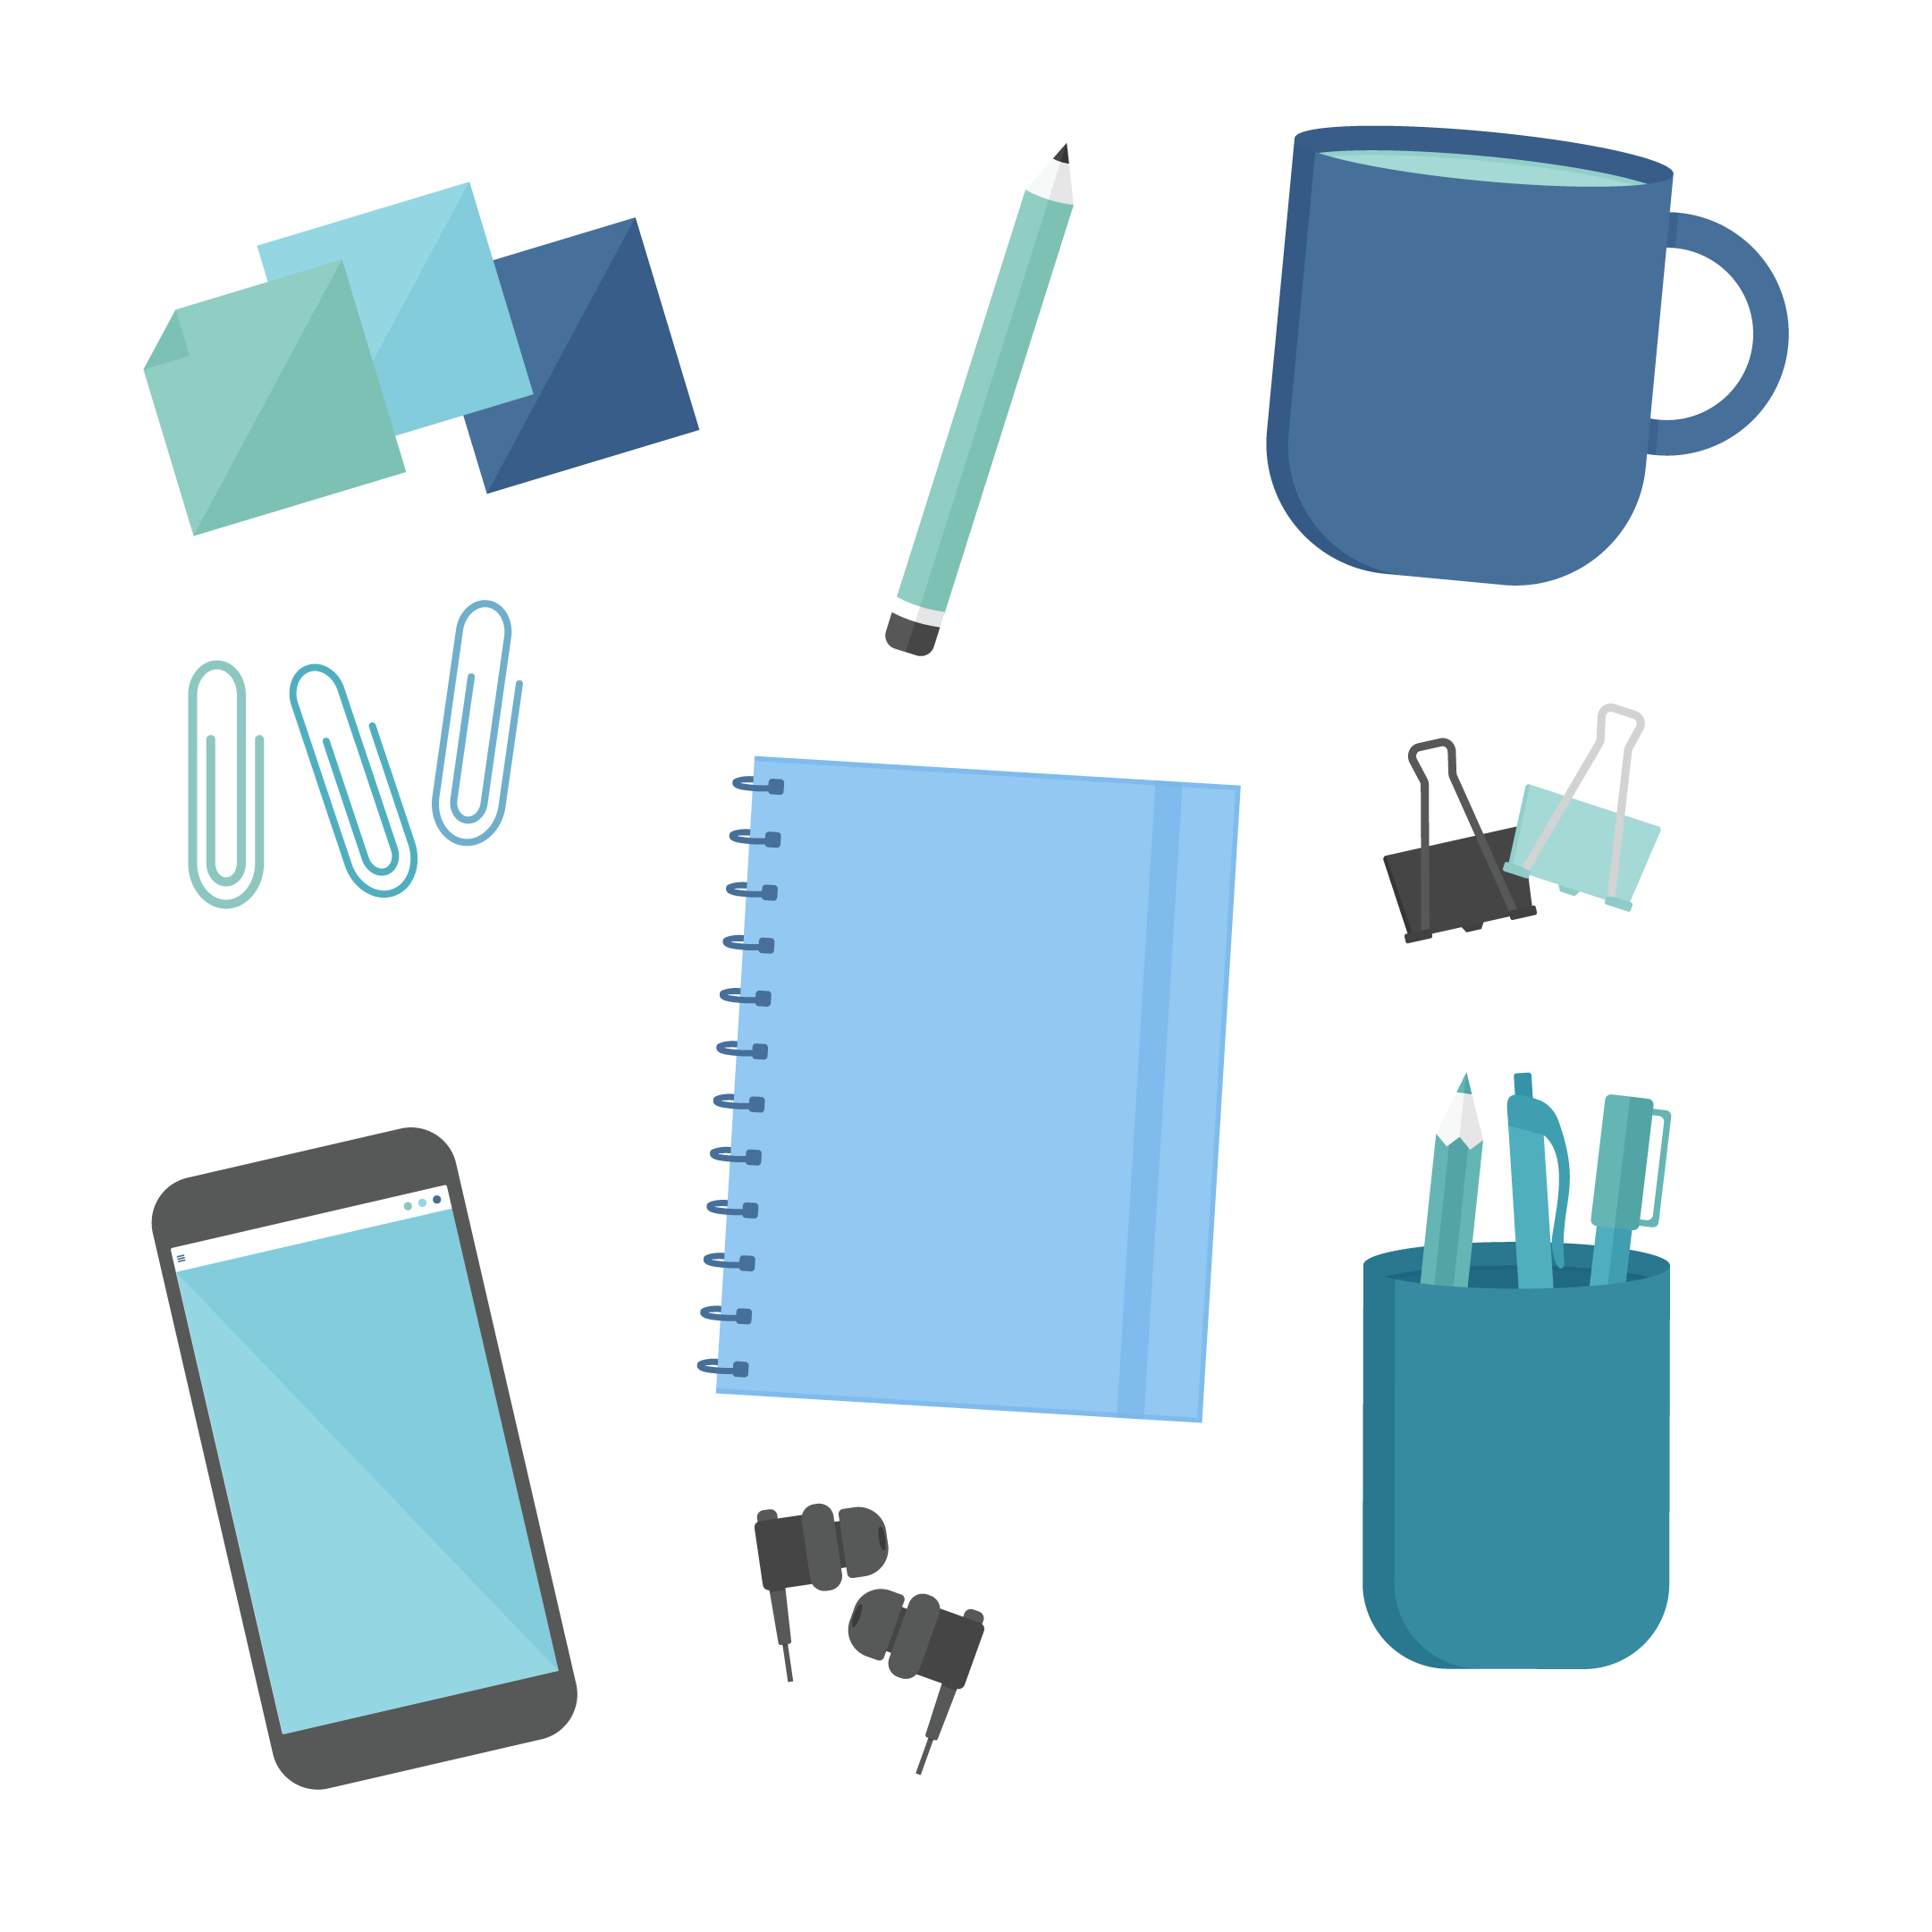 Collage illustration of blue, mint, teal, navy blue & black office supplies: sticky notes, pencil, large tea mug, paper clips, notebook, foldback/binder clips, pen holder, In-ear headphones, mobile phone in flat design style